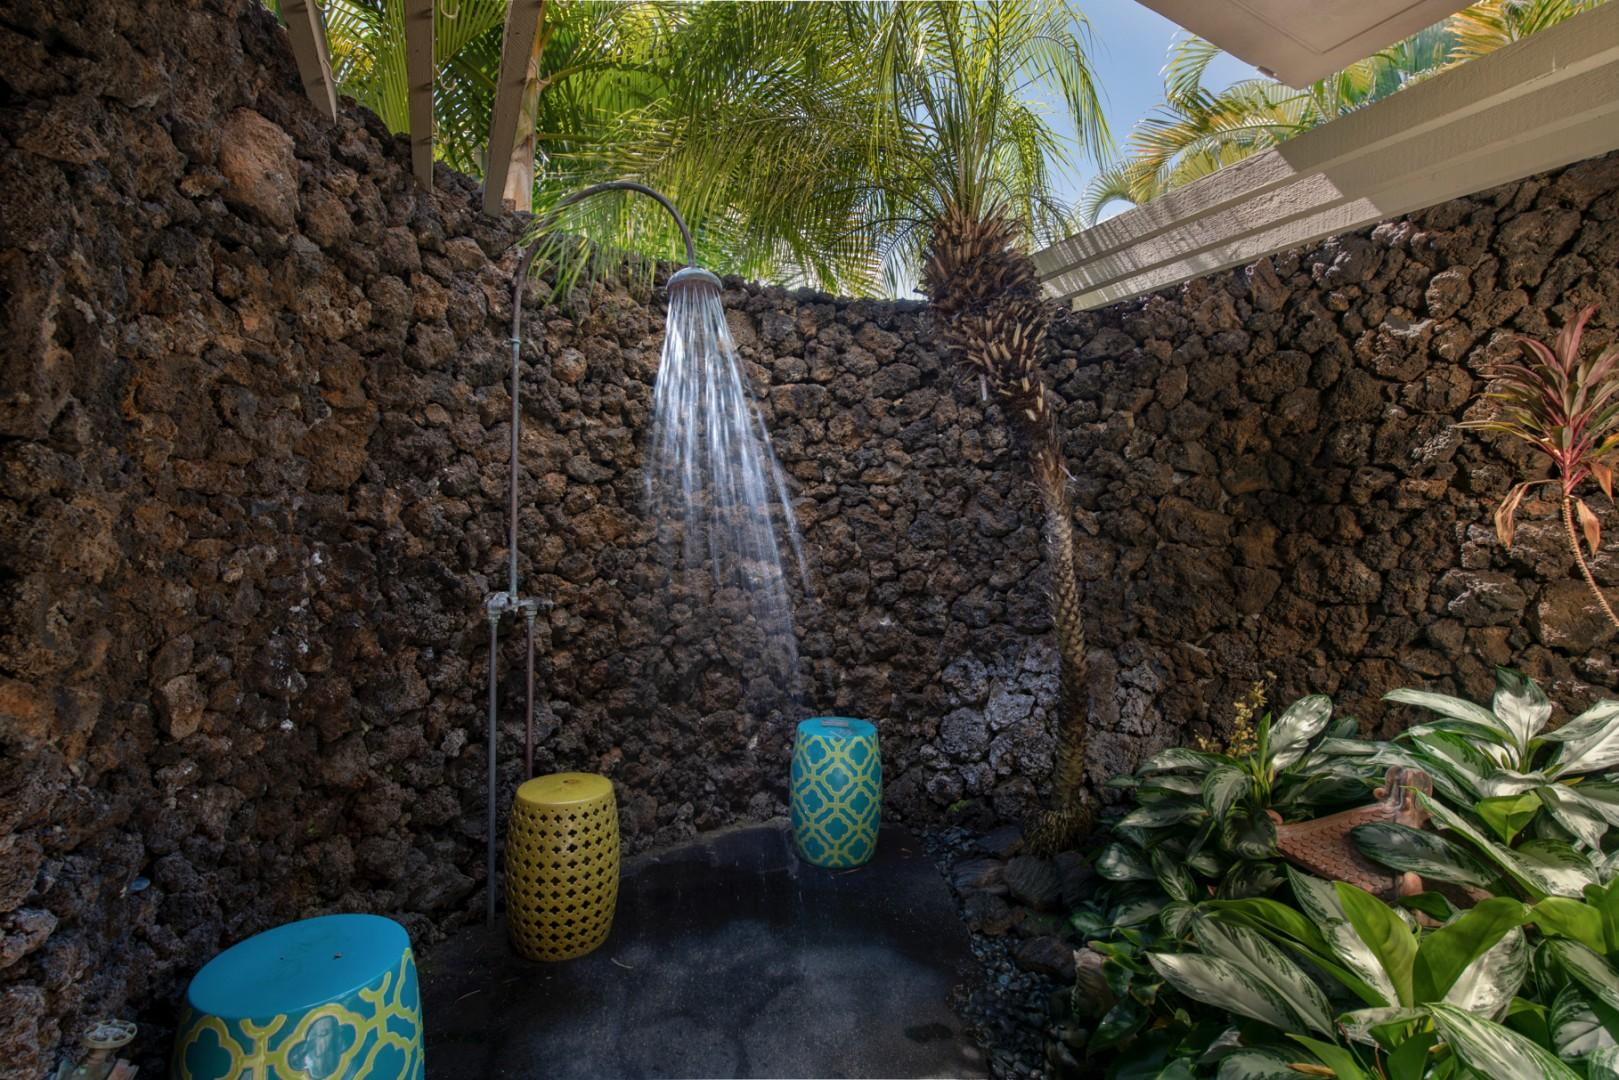 Private outdoor shower - a true tropical treat!